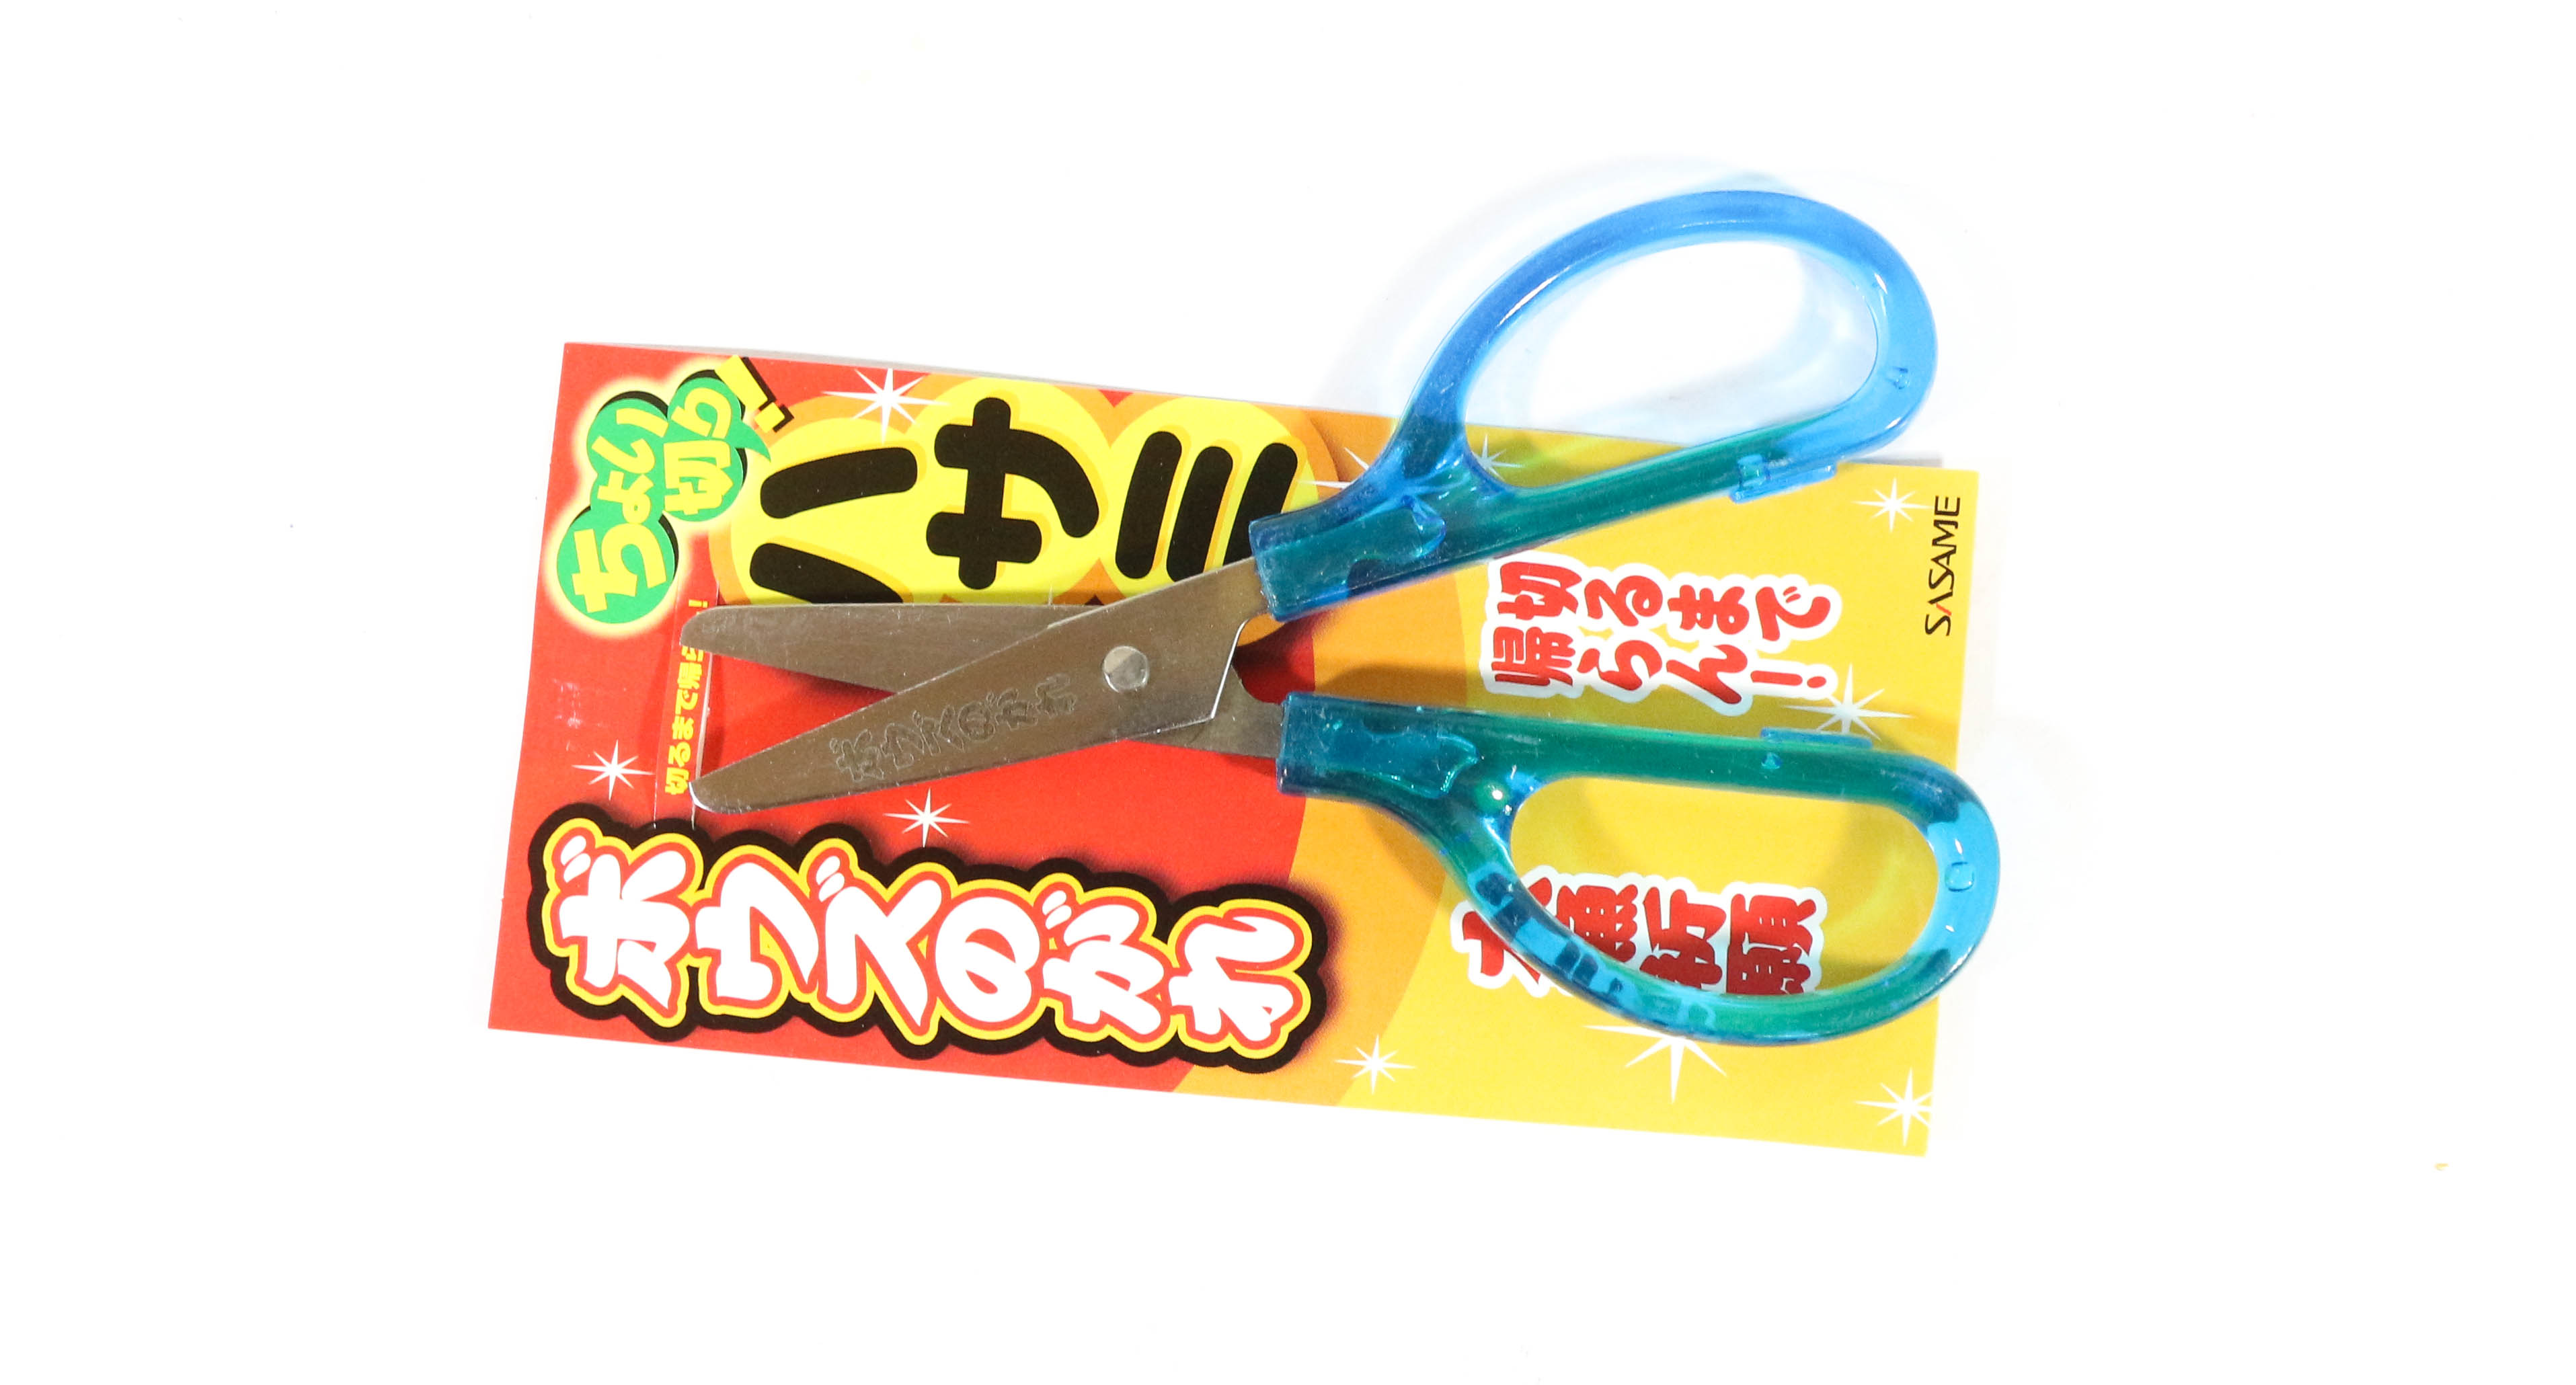 Sasame BOZ11 Fishing Bouz scissors Blue (2844)